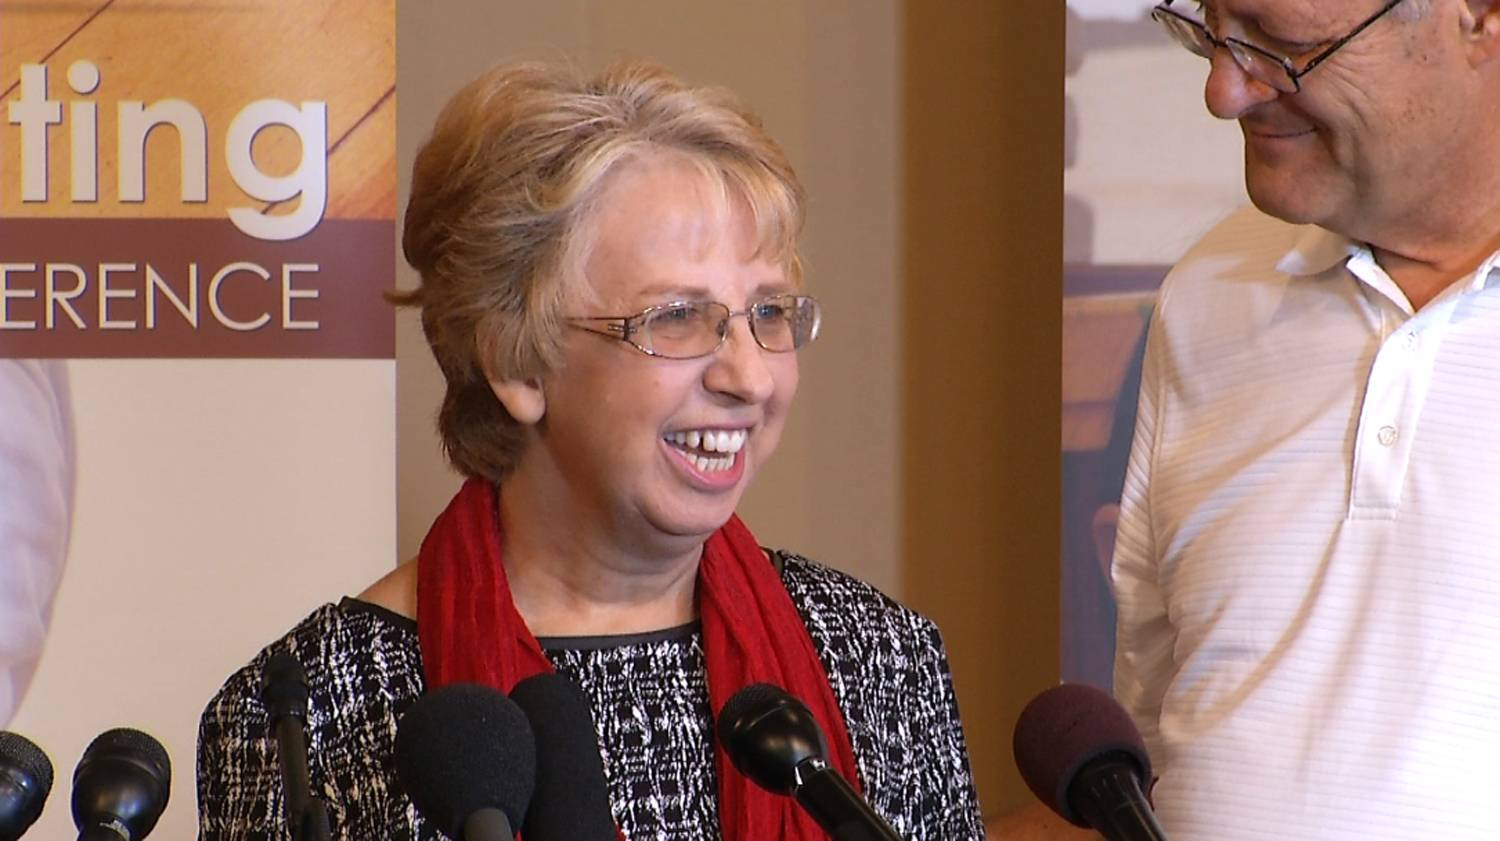 Aid worker Nancy Writebol discusses her recovery from the Ebola virus in this image taken from a video taken Wednesday in Charlotte, N.C. Writebol was infected with the virus while in Libera.